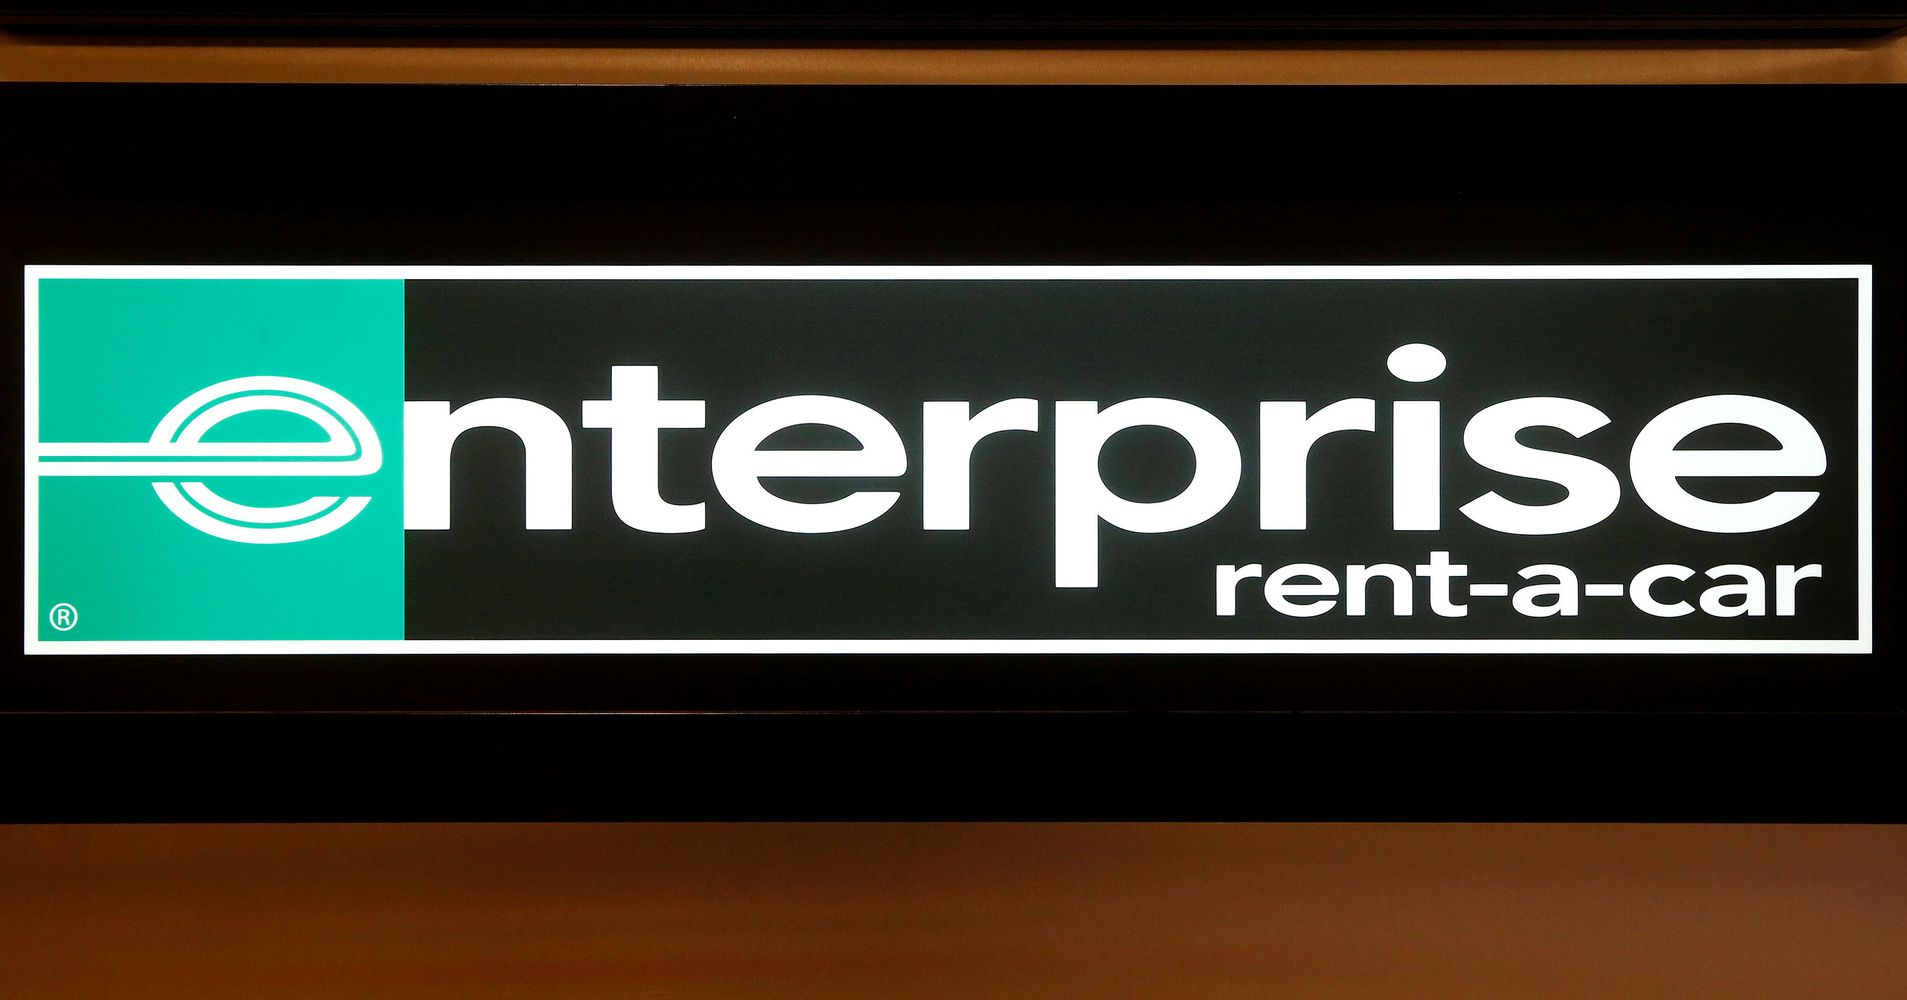 What Rental Car Companies Are Owned By Enterprise